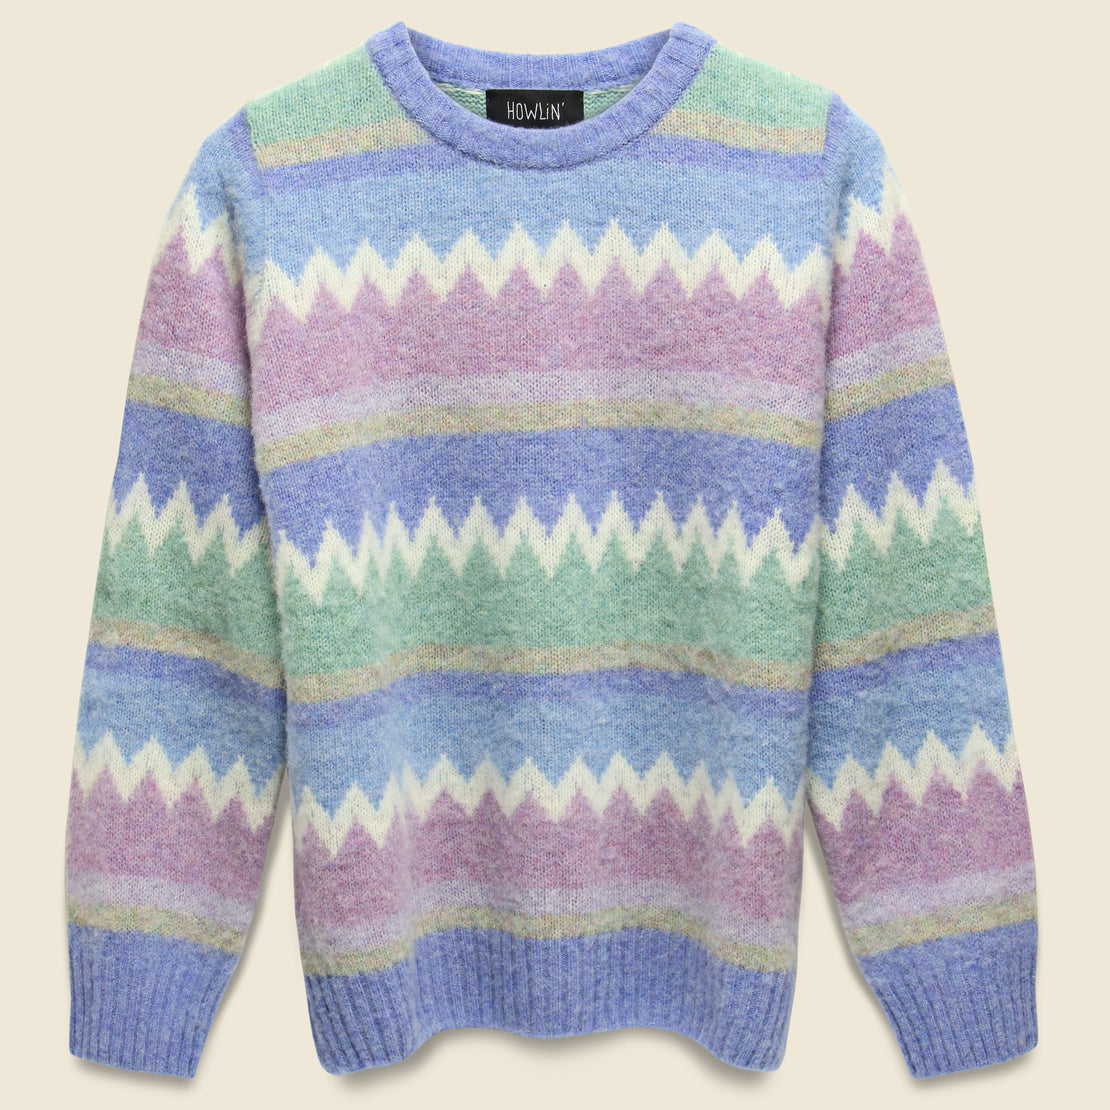 Howlin High Tension Sweater - Wave